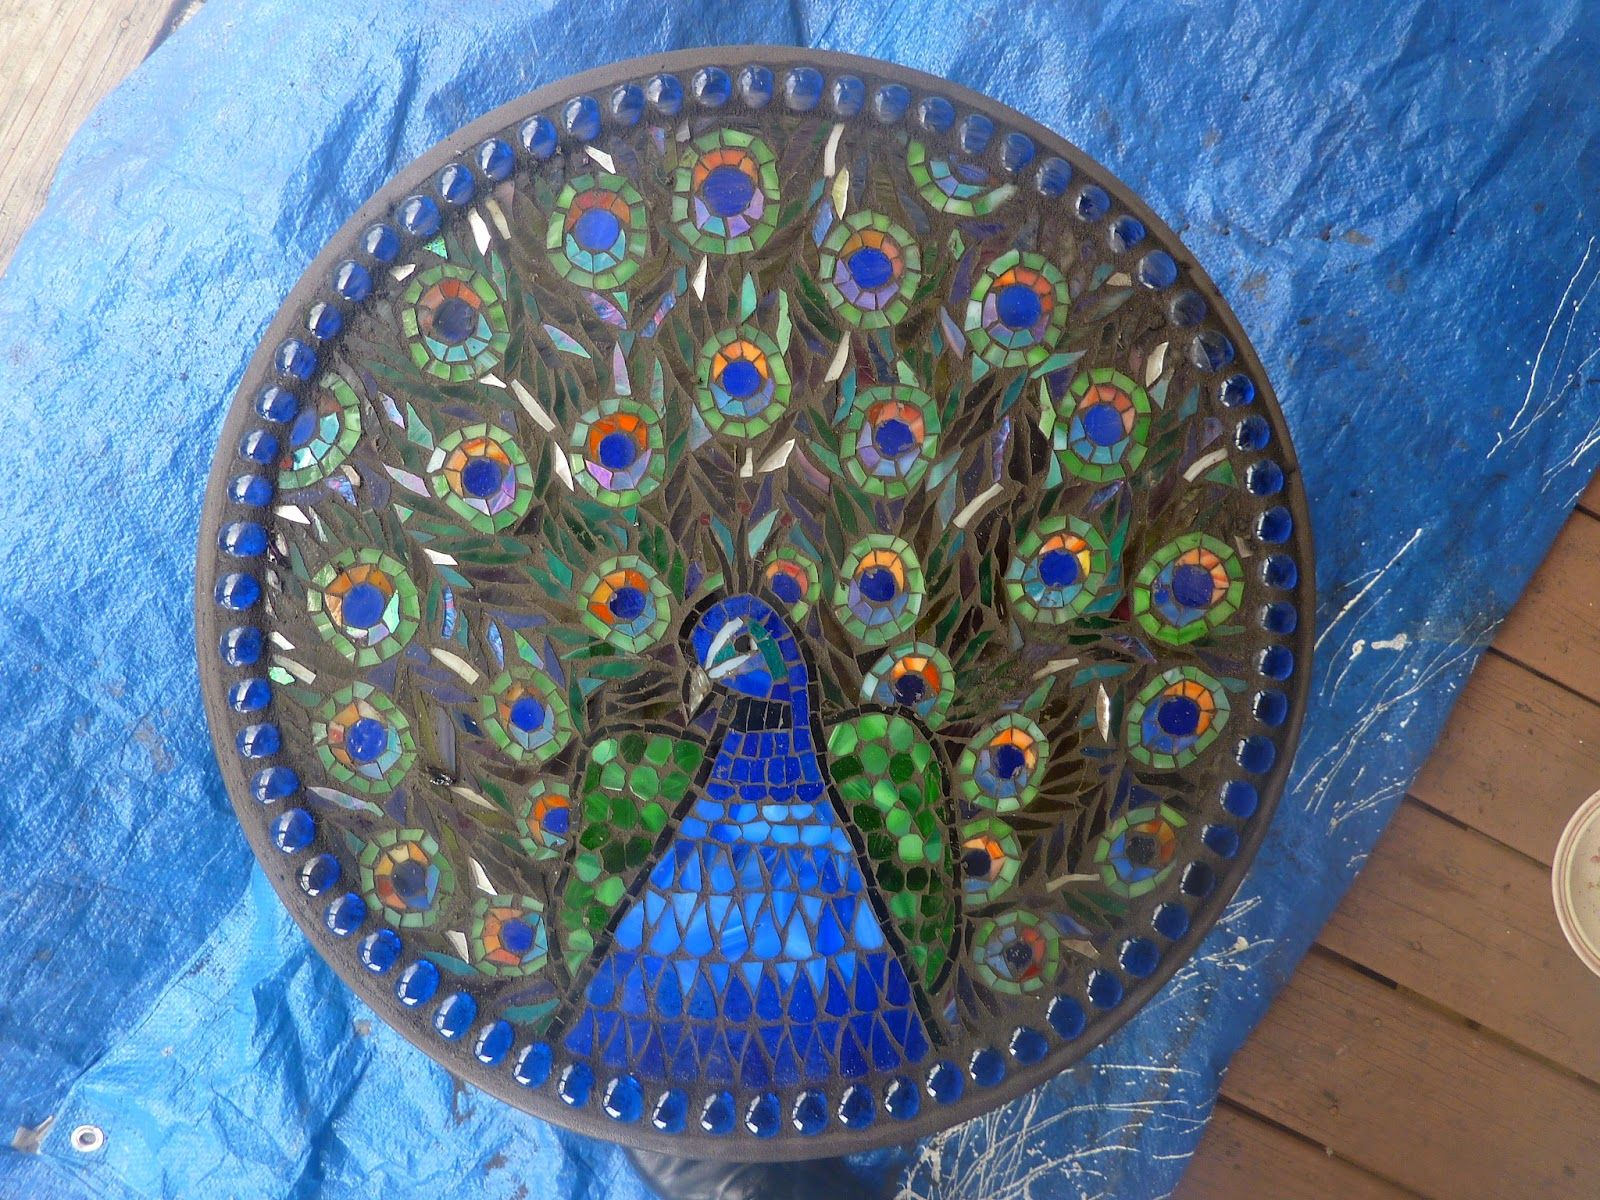 peacock mosaic table oh my gosh how cool would this be